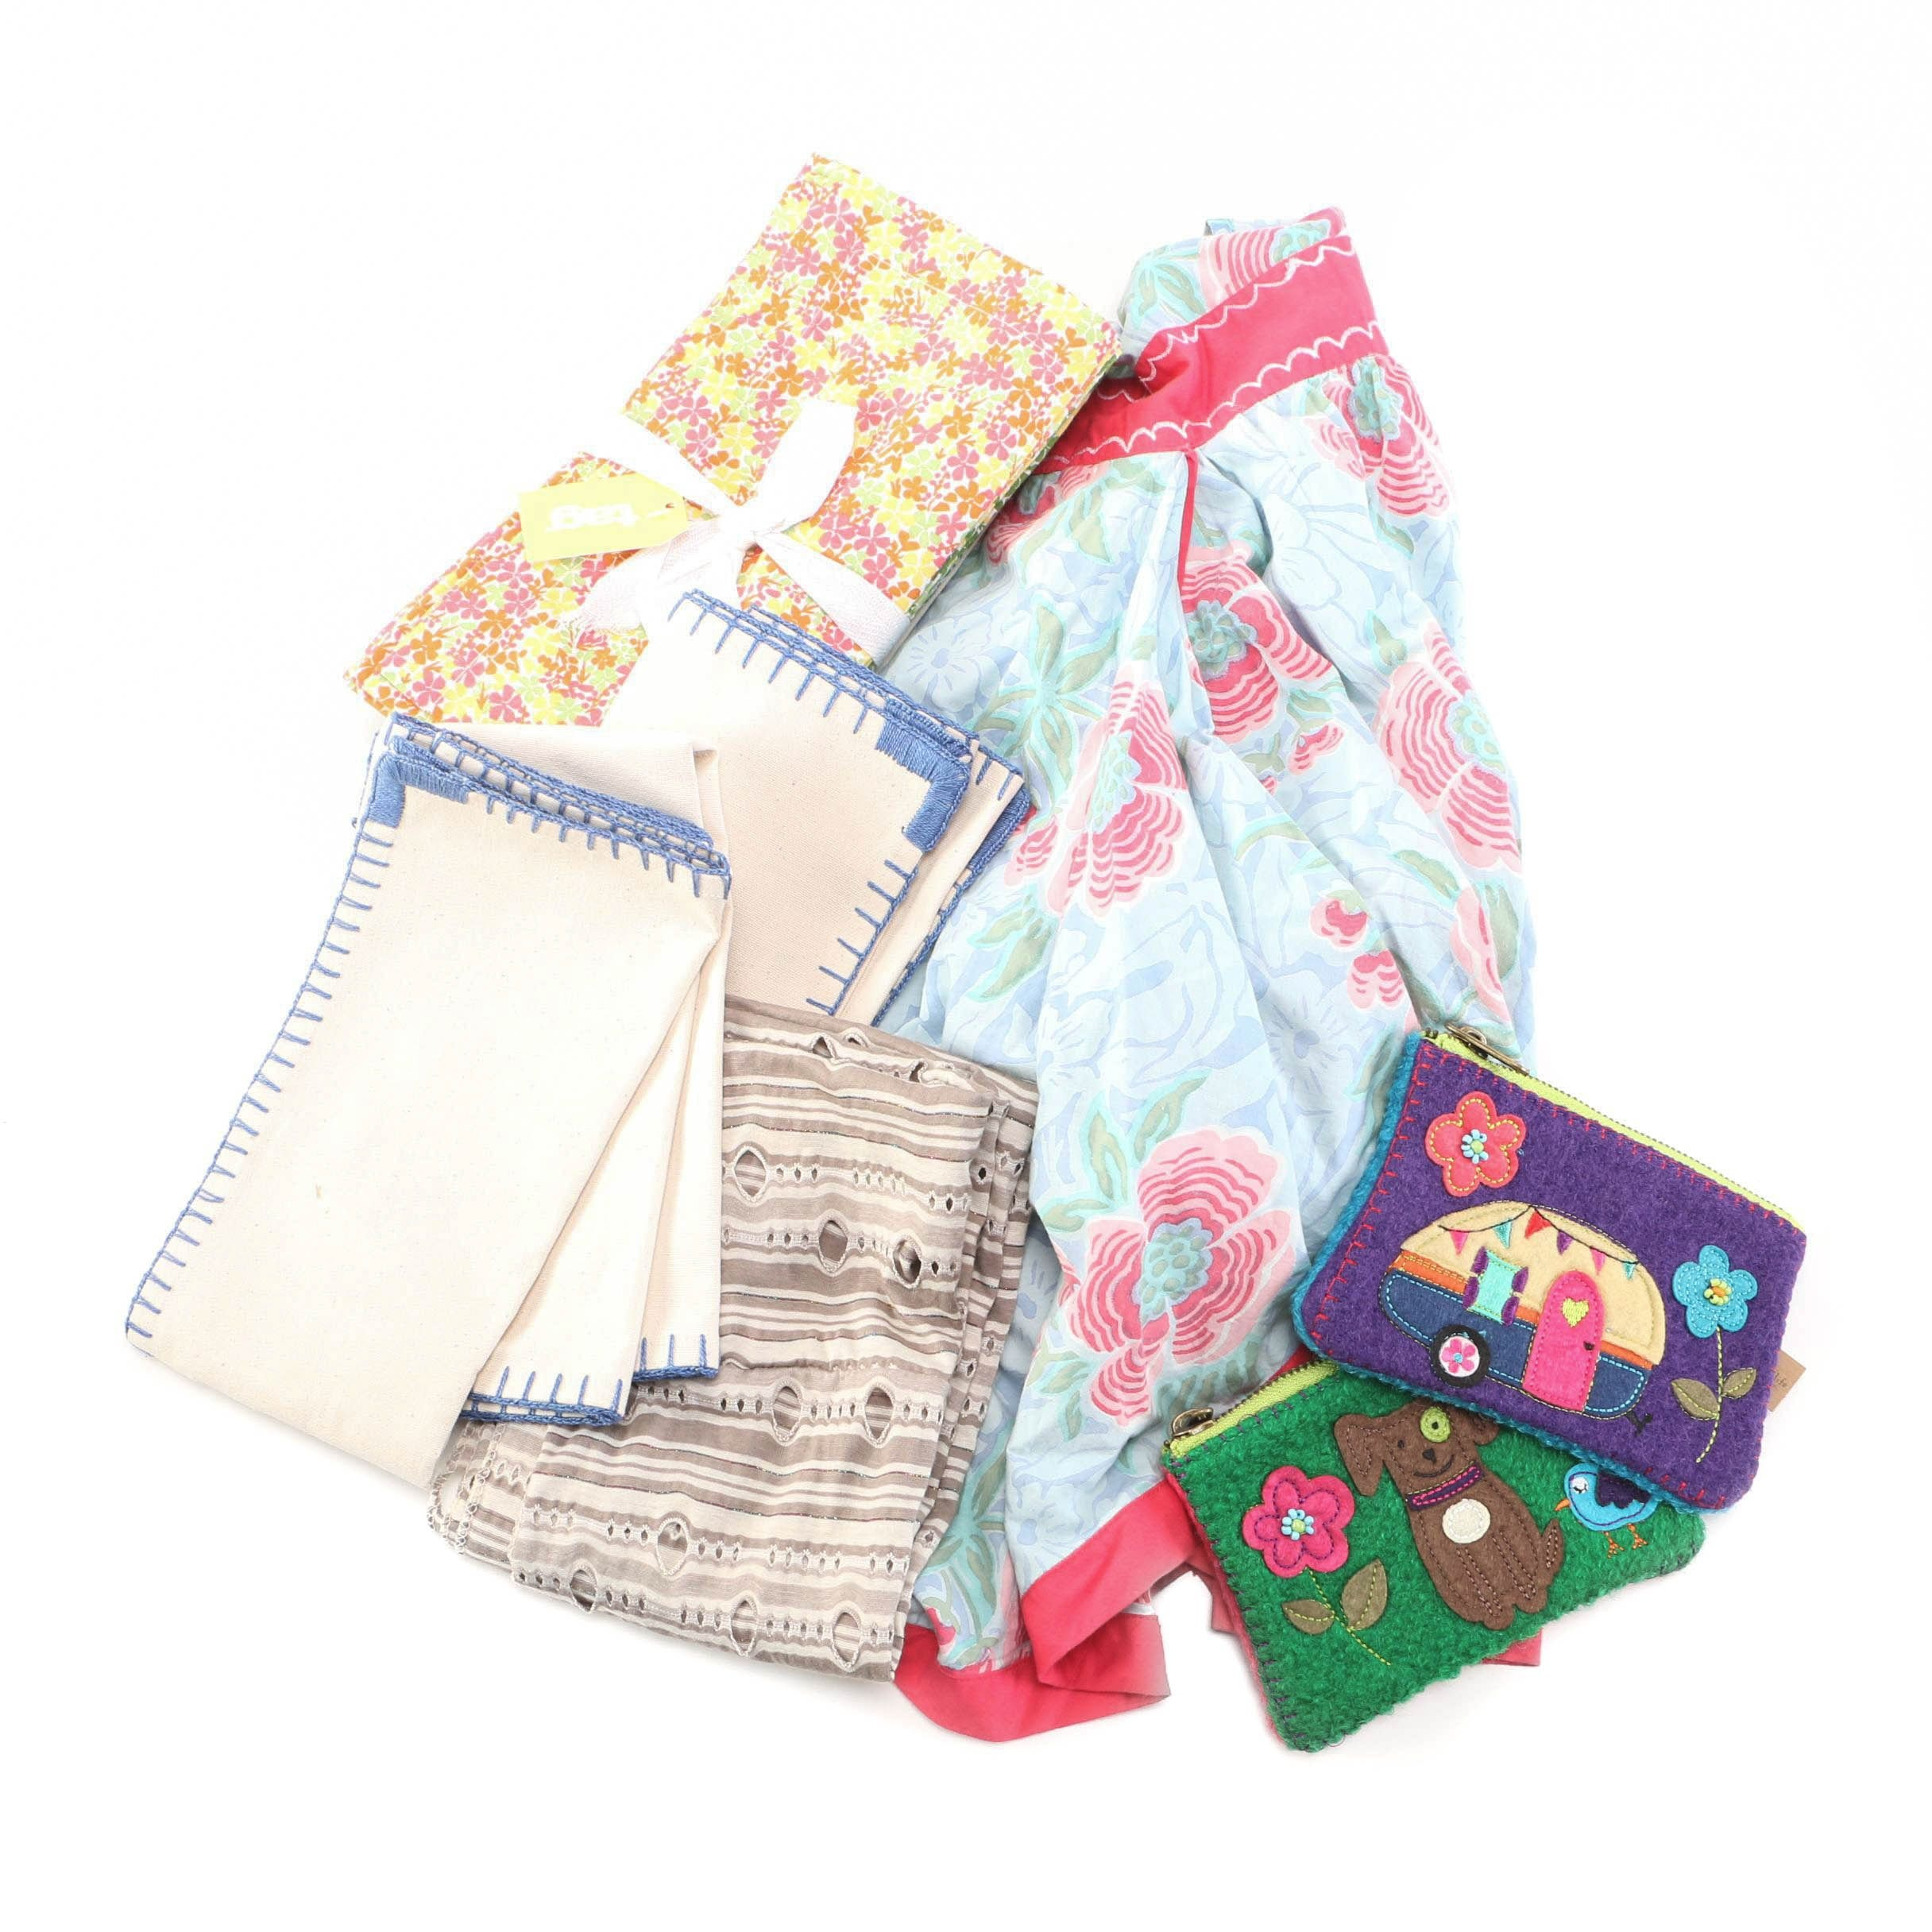 Assorted Cloth Napkins, Coin Purses and Apron